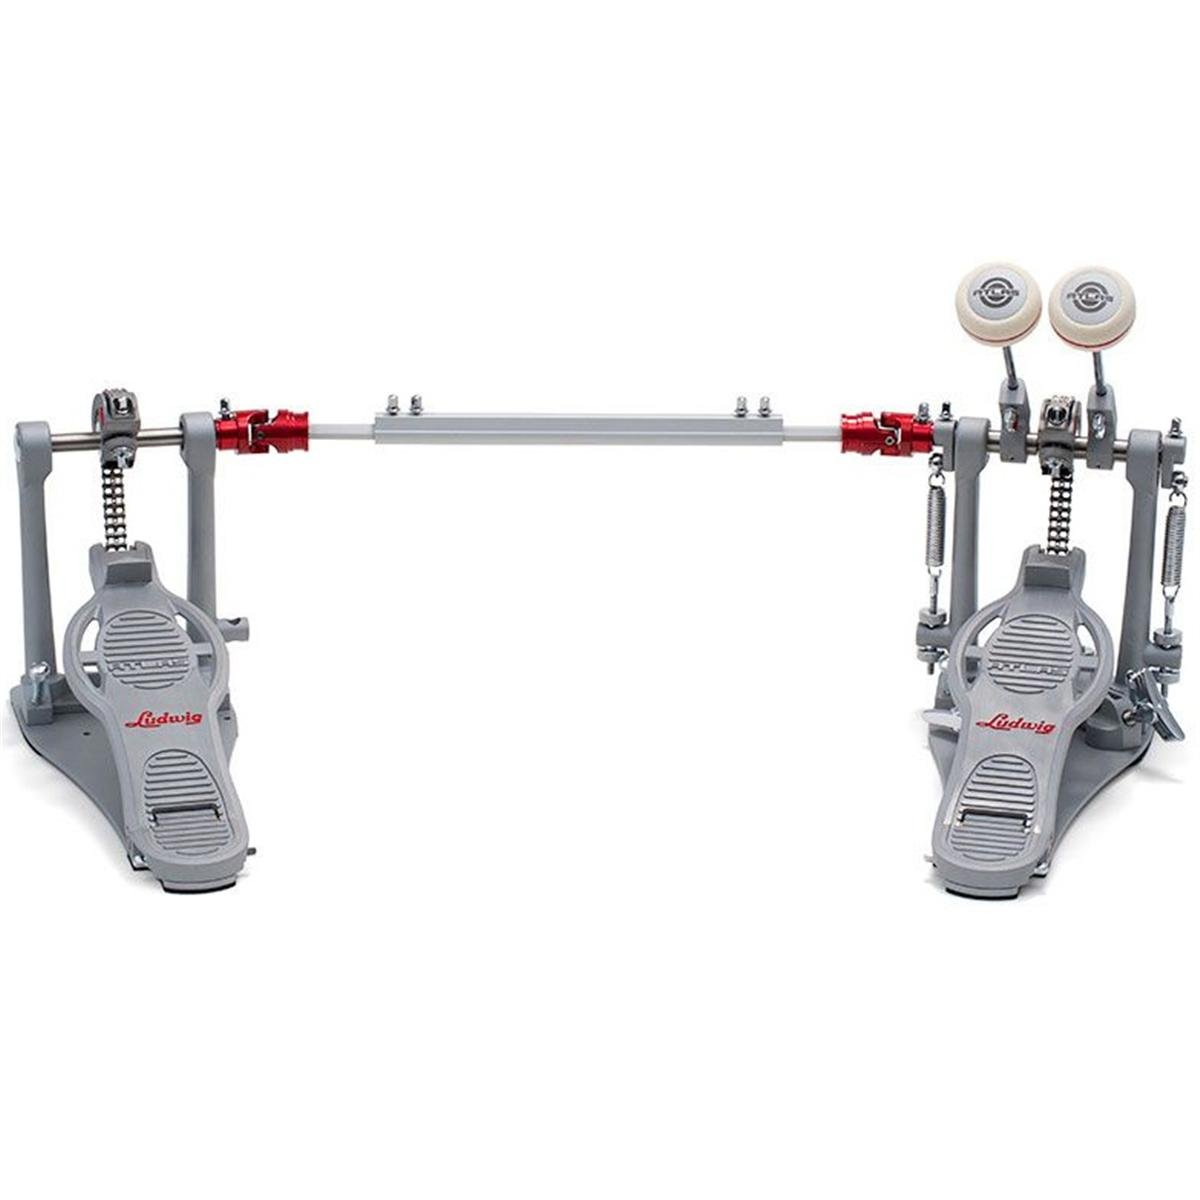 Ludwig LAP12FPR Atlas Pro Double Bass Drum Pedal with Rock Plate